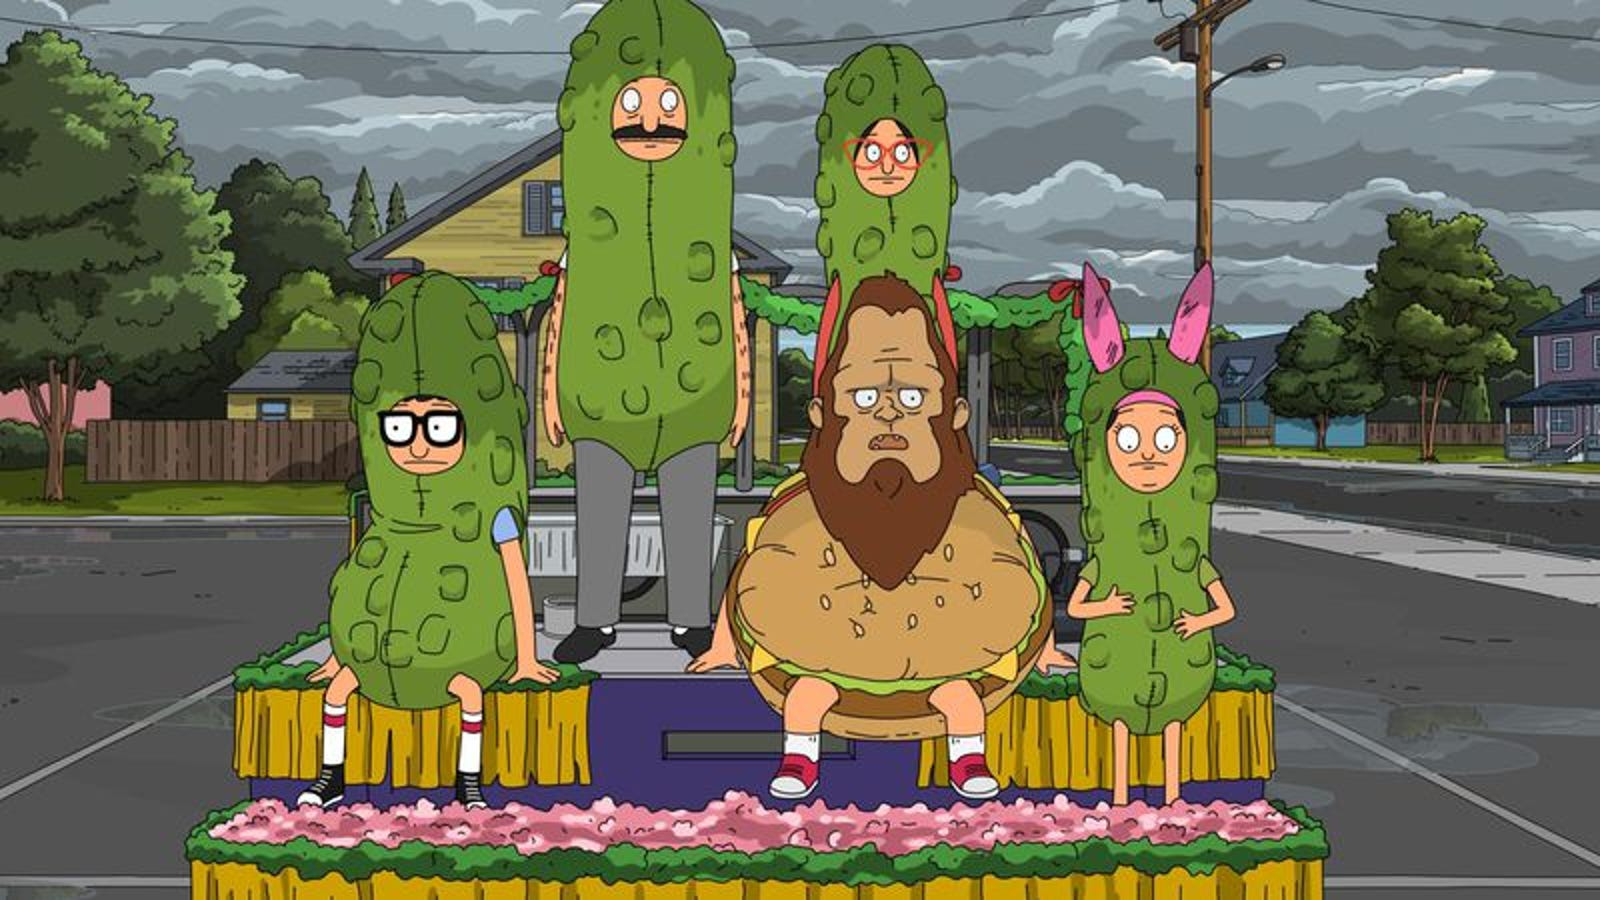 bob's burgers ends its season with a simple reminder of what makes